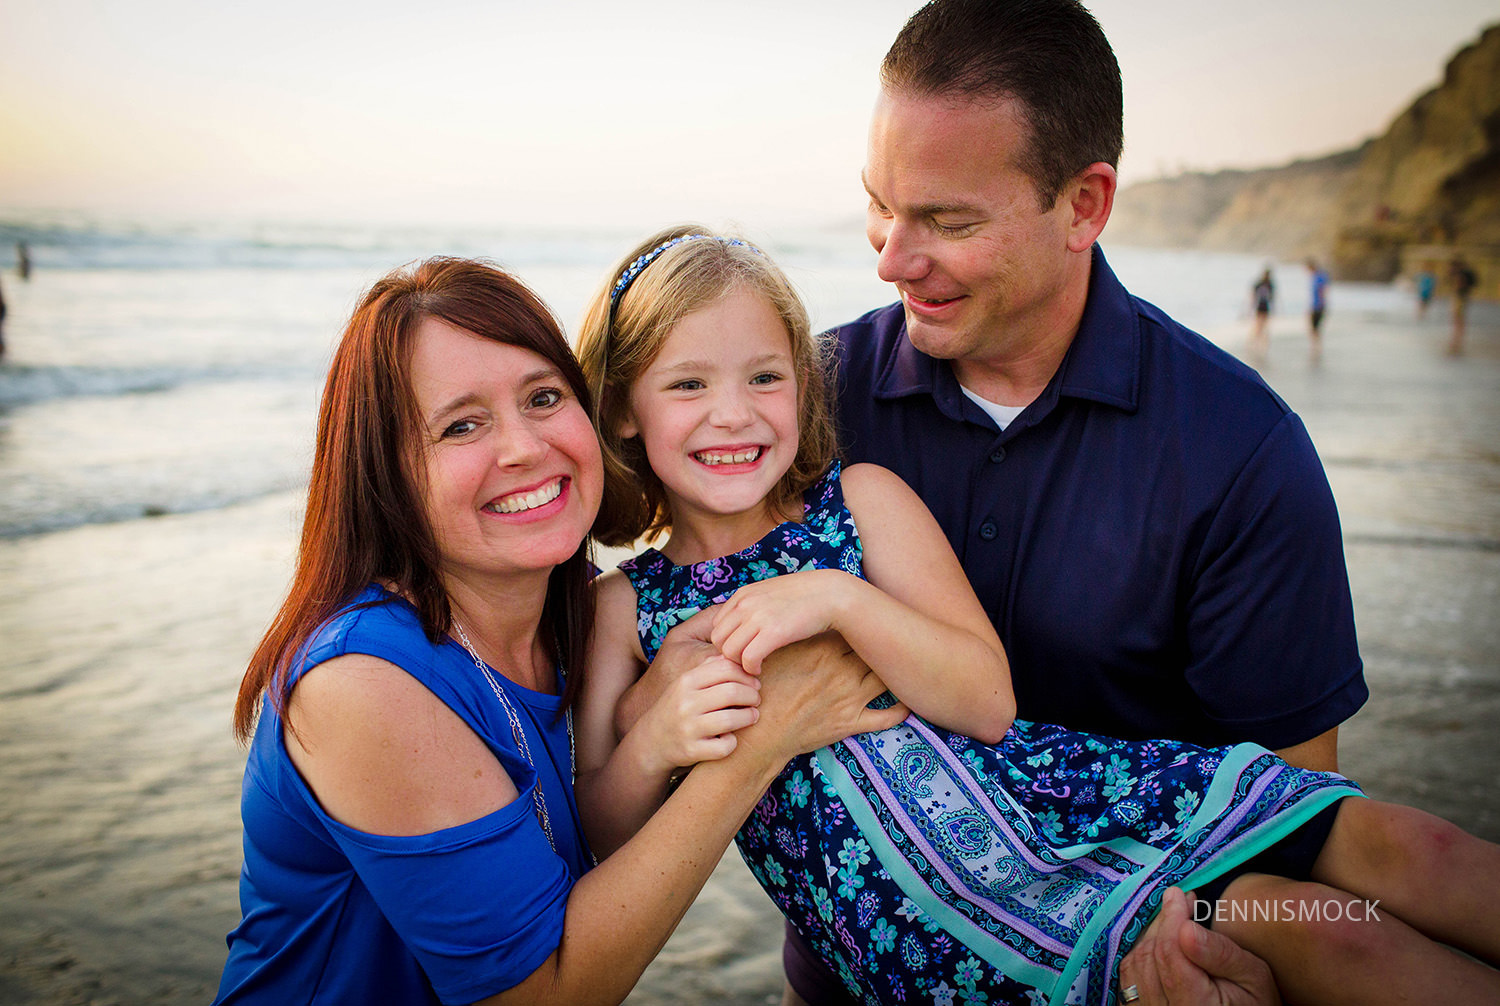 family giggles and laughs during family beach portrait session in La Jolla California.